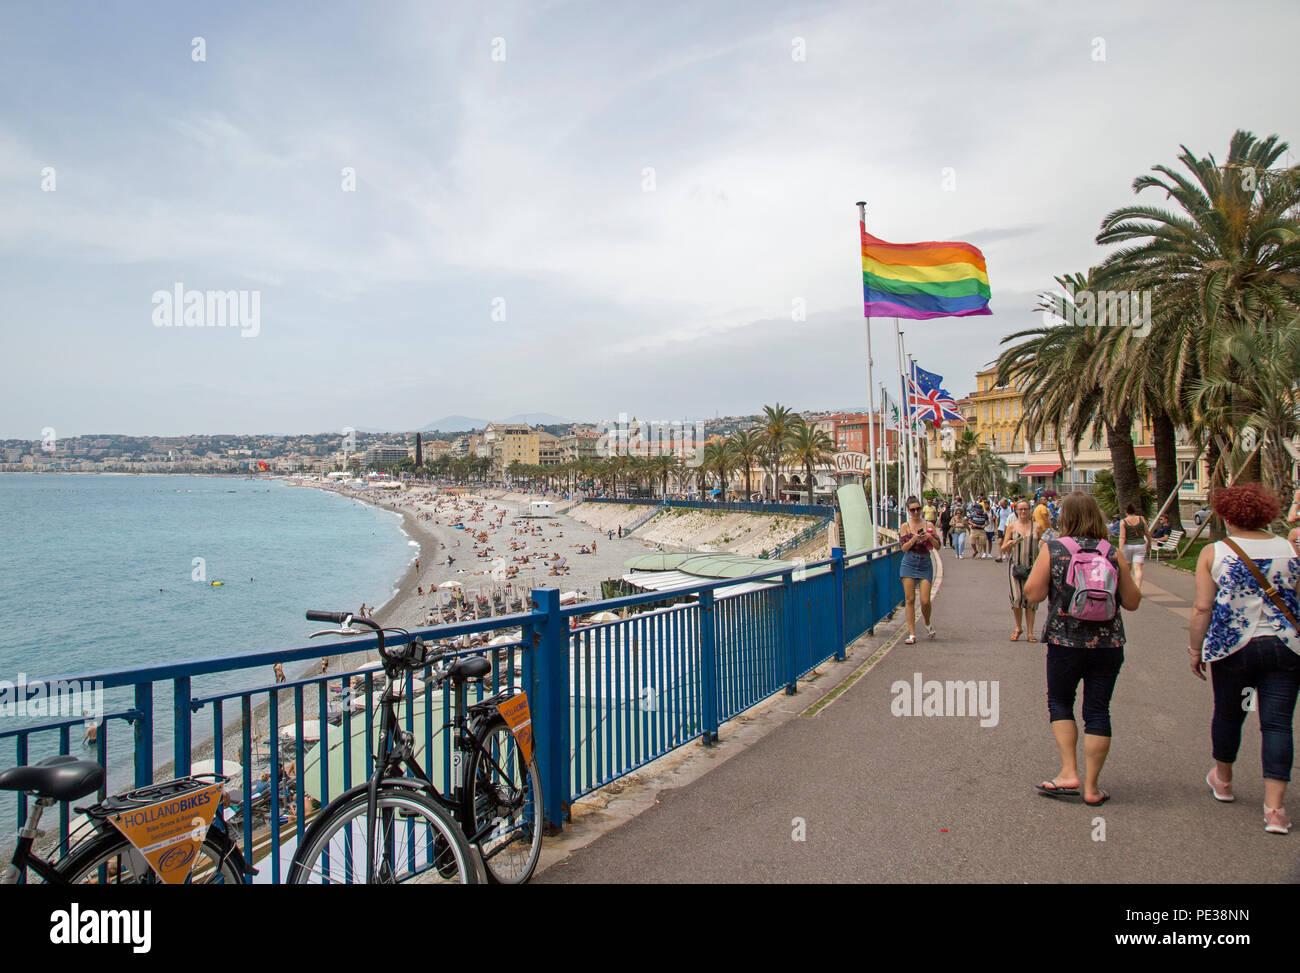 June 2018, Nice, France, A freedom flag flies on the promenade indicating gay friendly credentials. - Stock Image